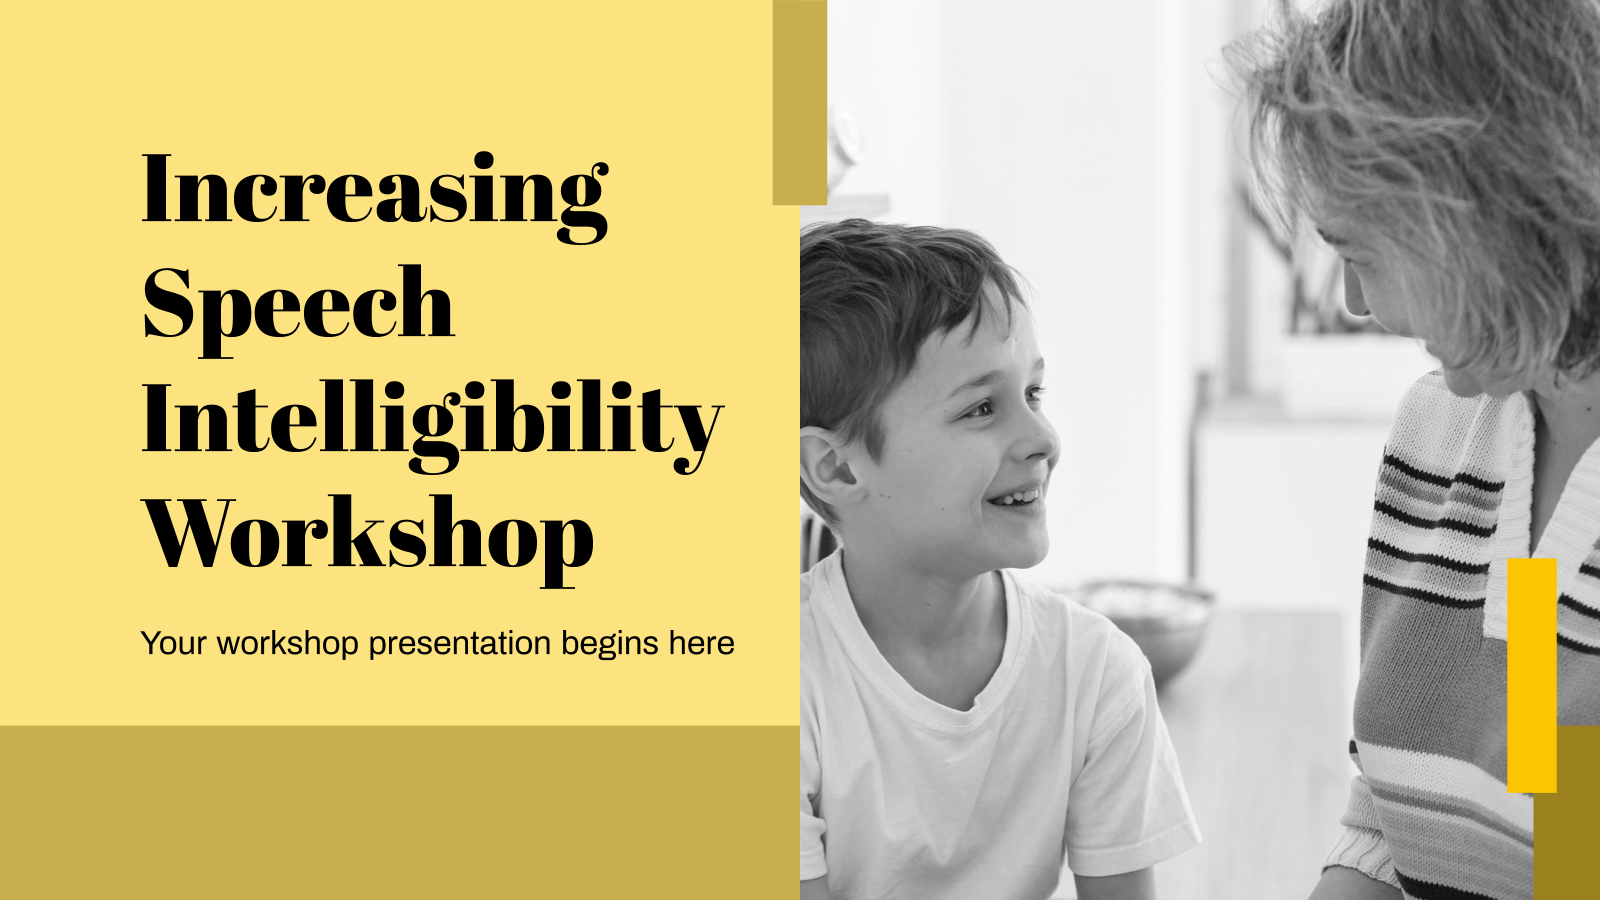 Increasing Speech Intelligibility Workshop presentation template